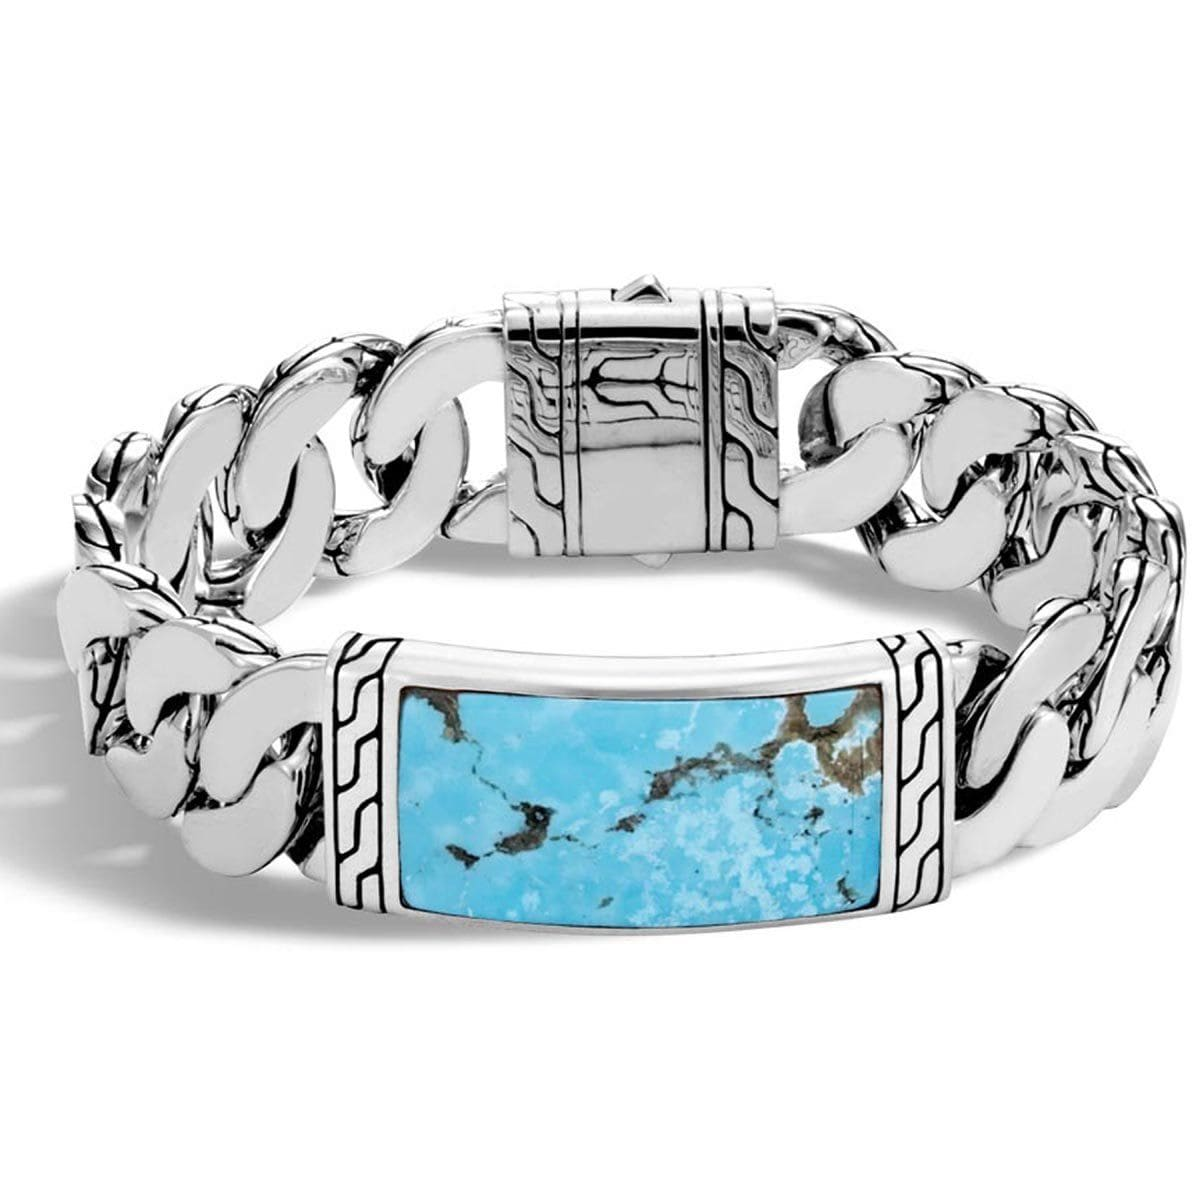 Classic Chain Men's Silver Turquoise Bracelet - BMS9995581TQBM-John Hardy-Renee Taylor Gallery